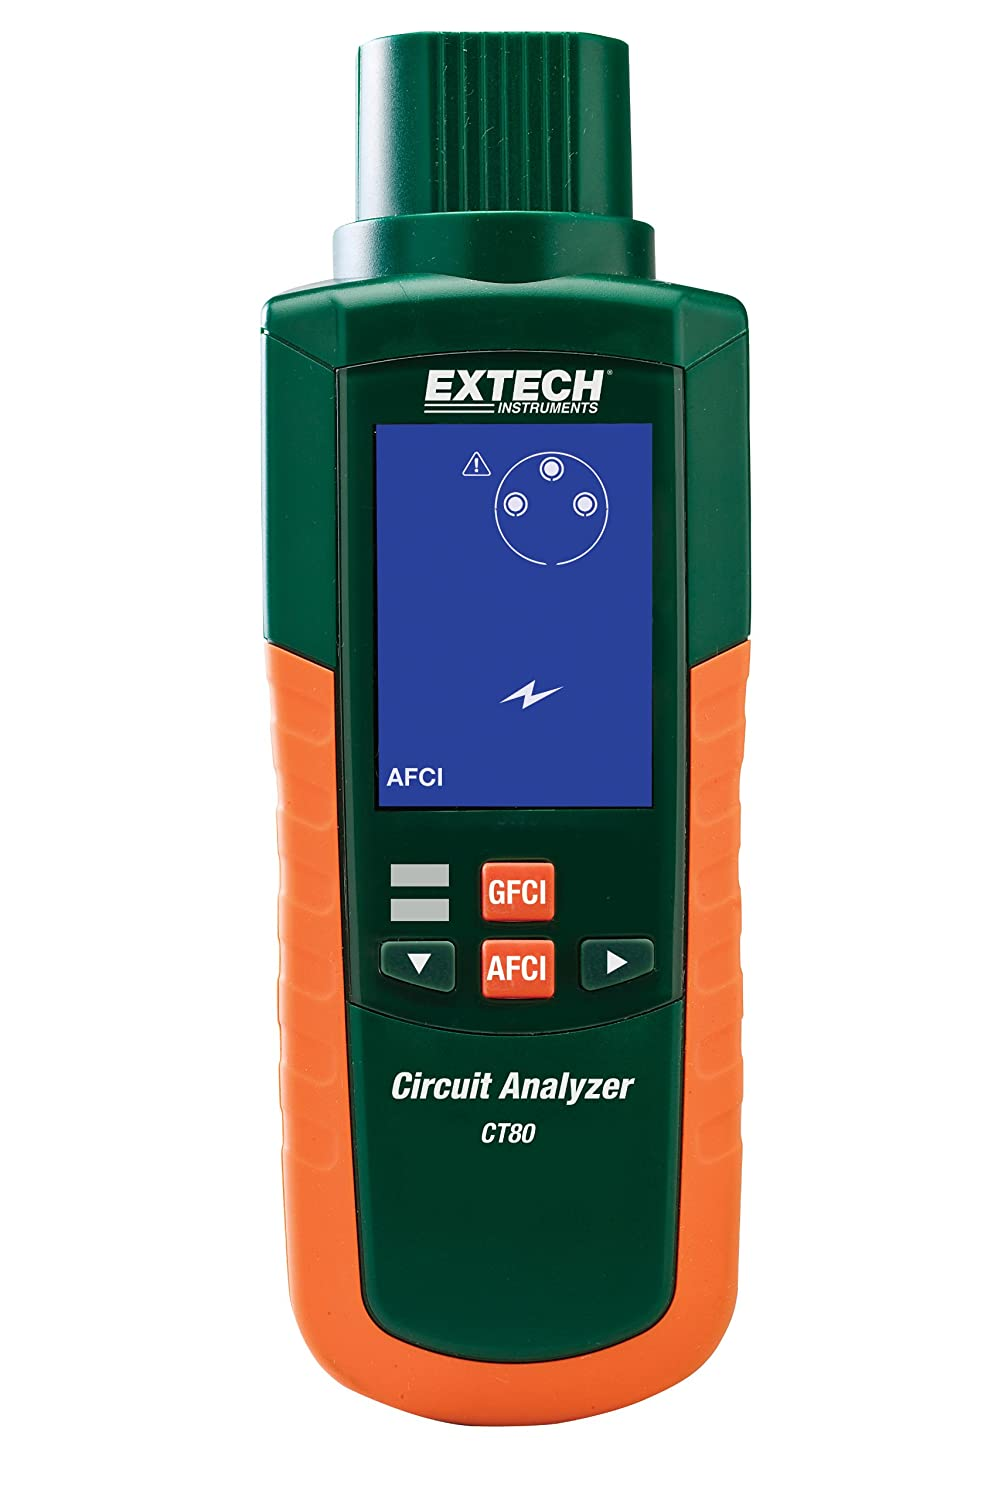 Extech Ct80 Ac Circuit Load Tester With Gfci Afci Portable Ground Fault Interrupter W Four 15 A Breaker